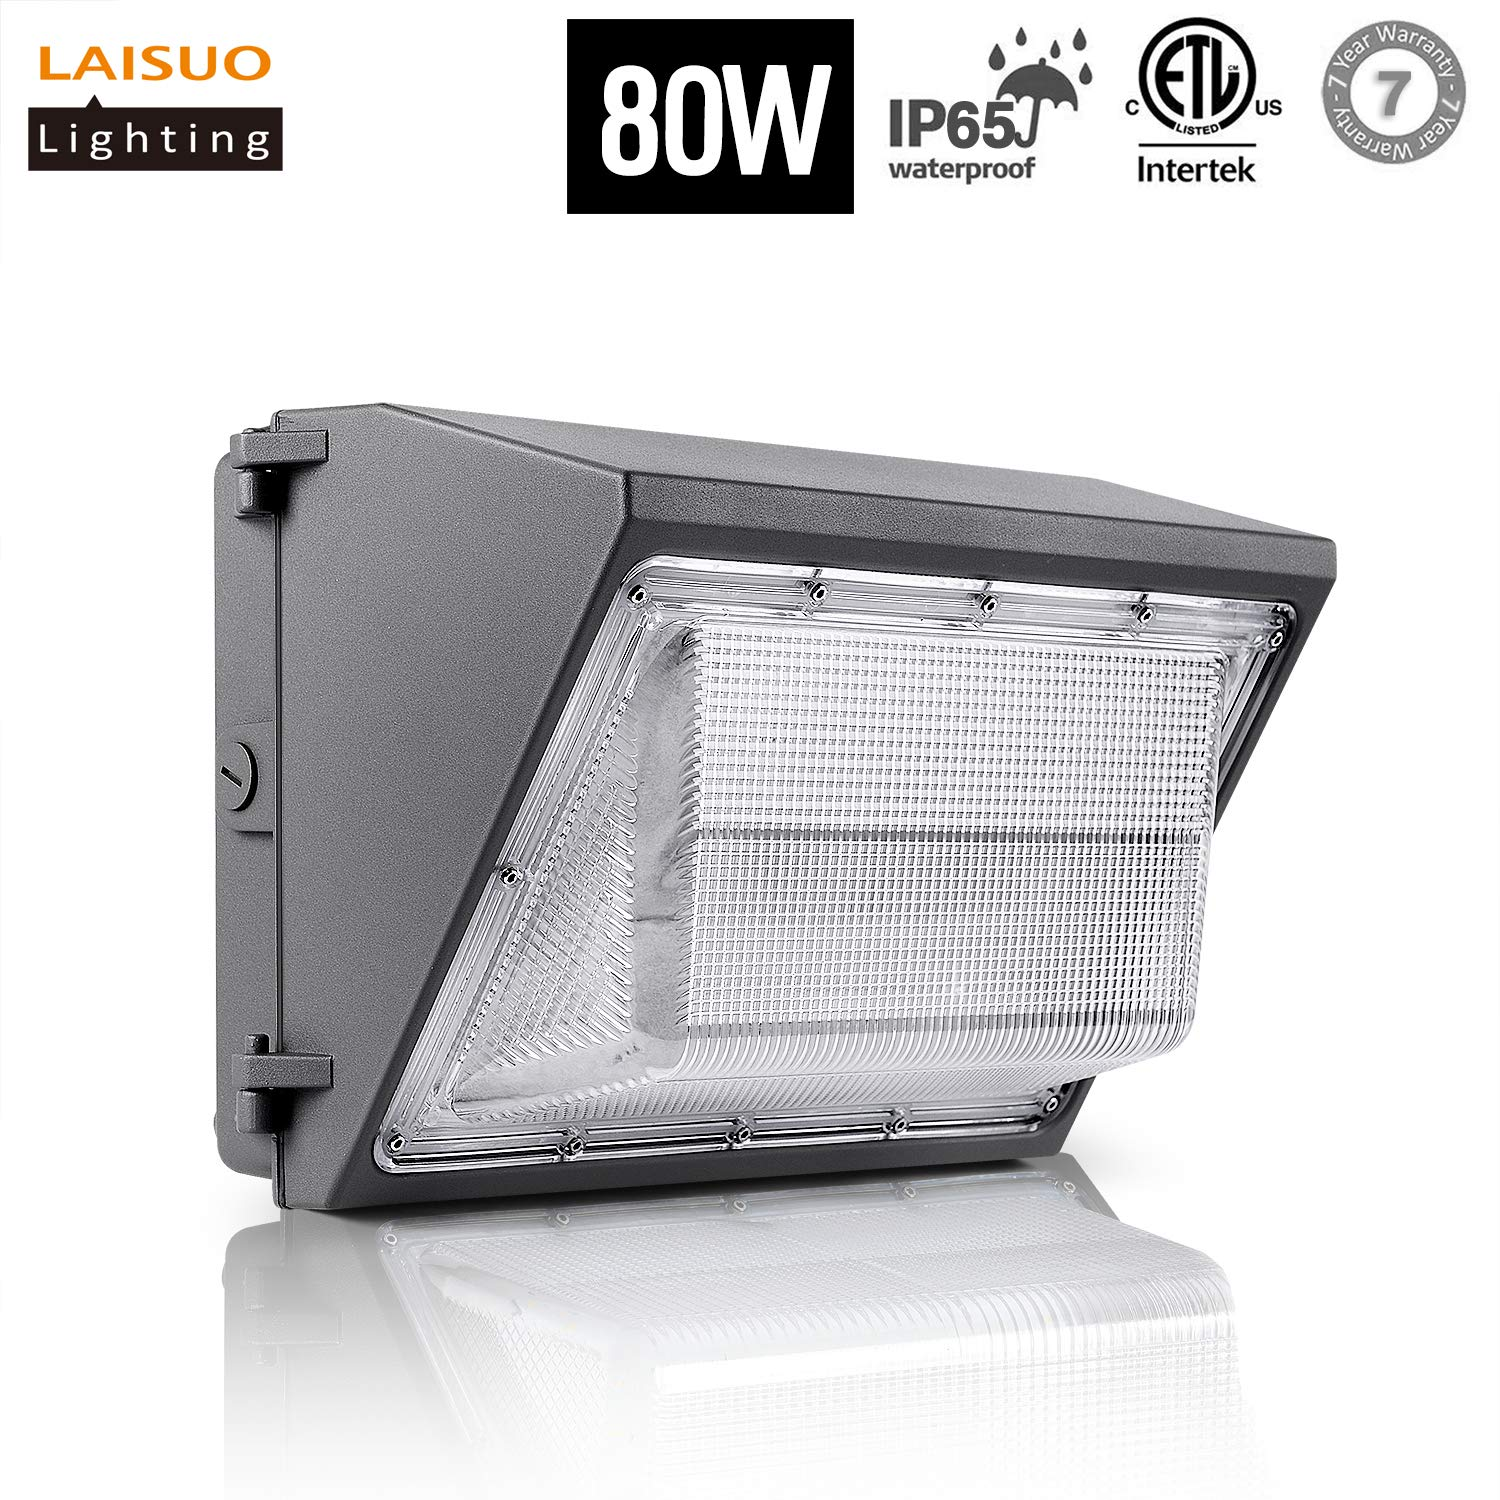 LED Wall Pack Light 80W Isolated Power 8970 Lumens 5000K Daylight White 250W Hps/MH Bulb Replacement Waterproof Outdoor Lighting for Home Security, Walkways,Die-Cast Aluminum Body, ETL Listed